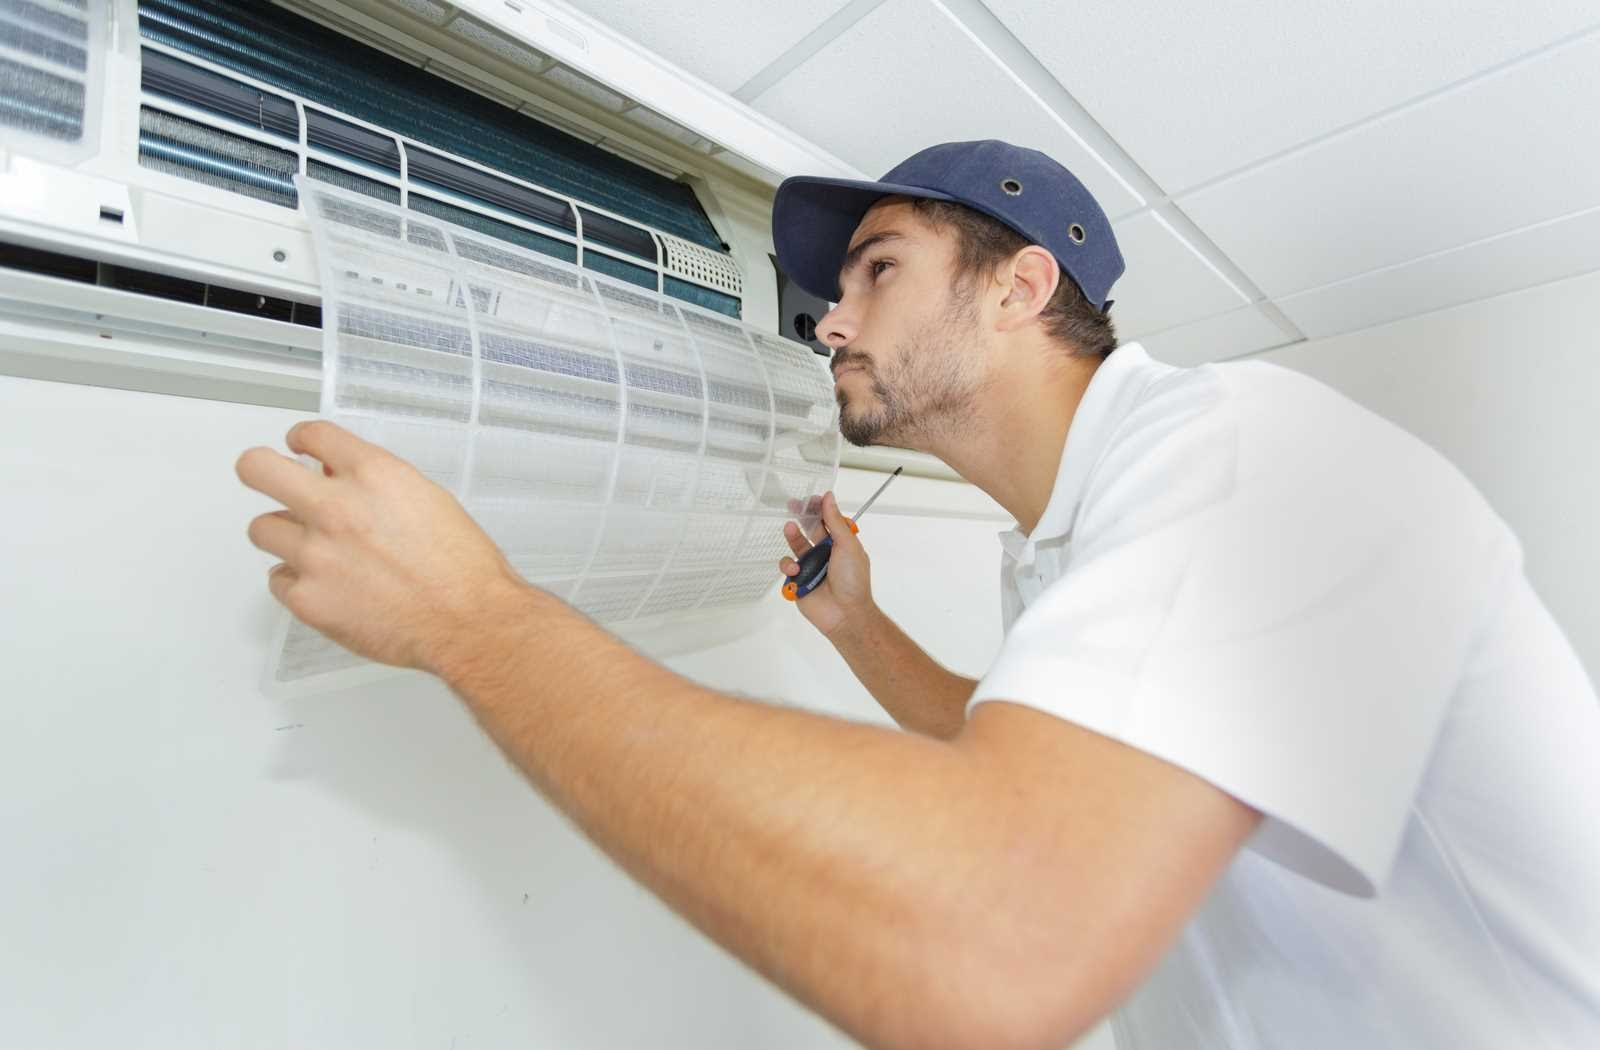 What to do About Weird Noises Coming From Your Air Conditioner